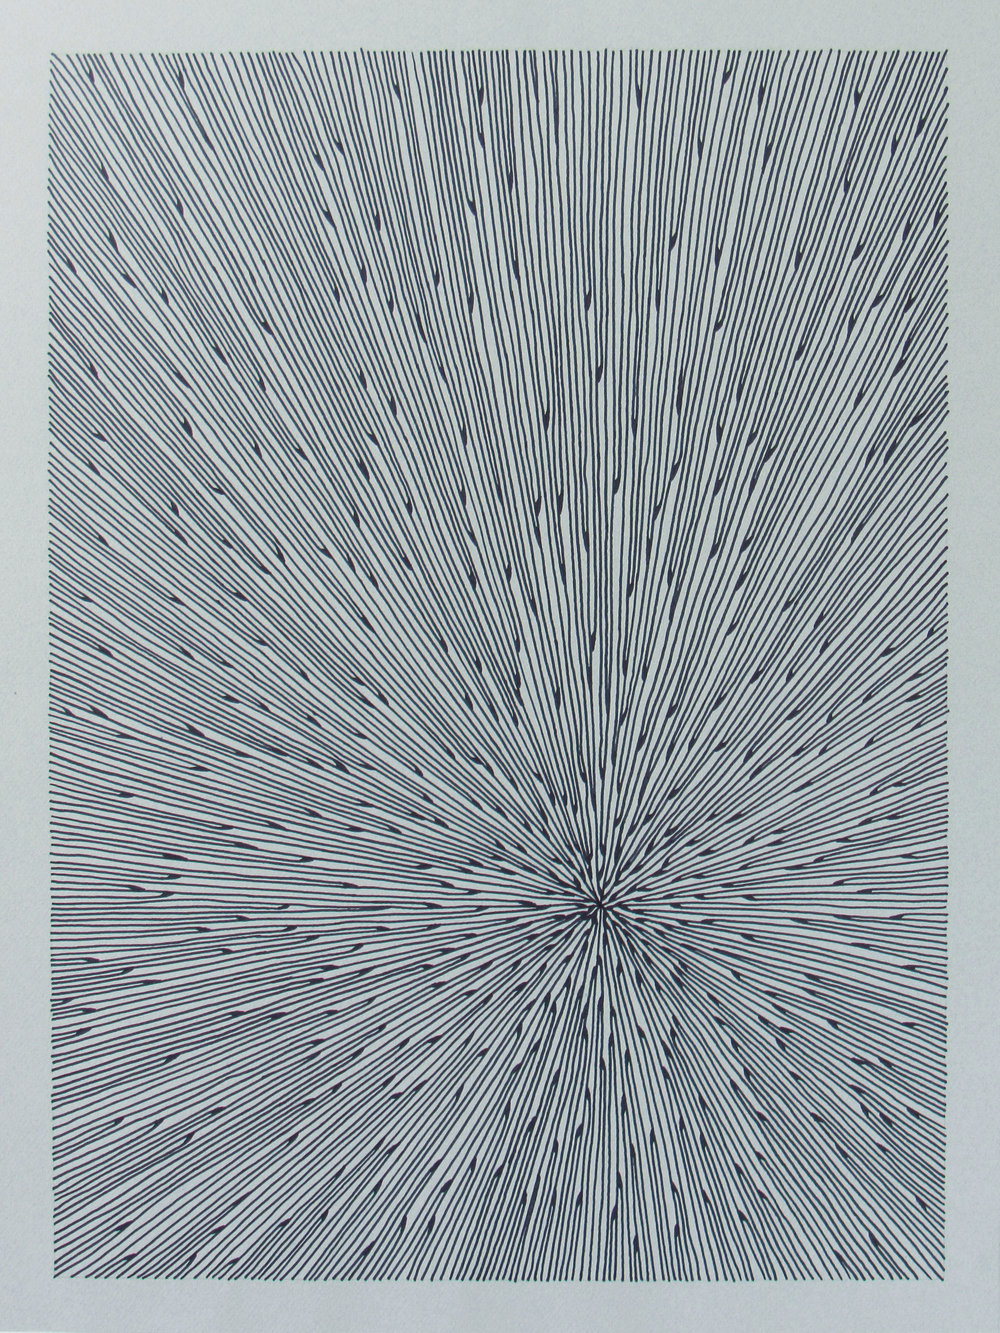 Seafan 22 , 2017, 18x24, marker and paper. available.